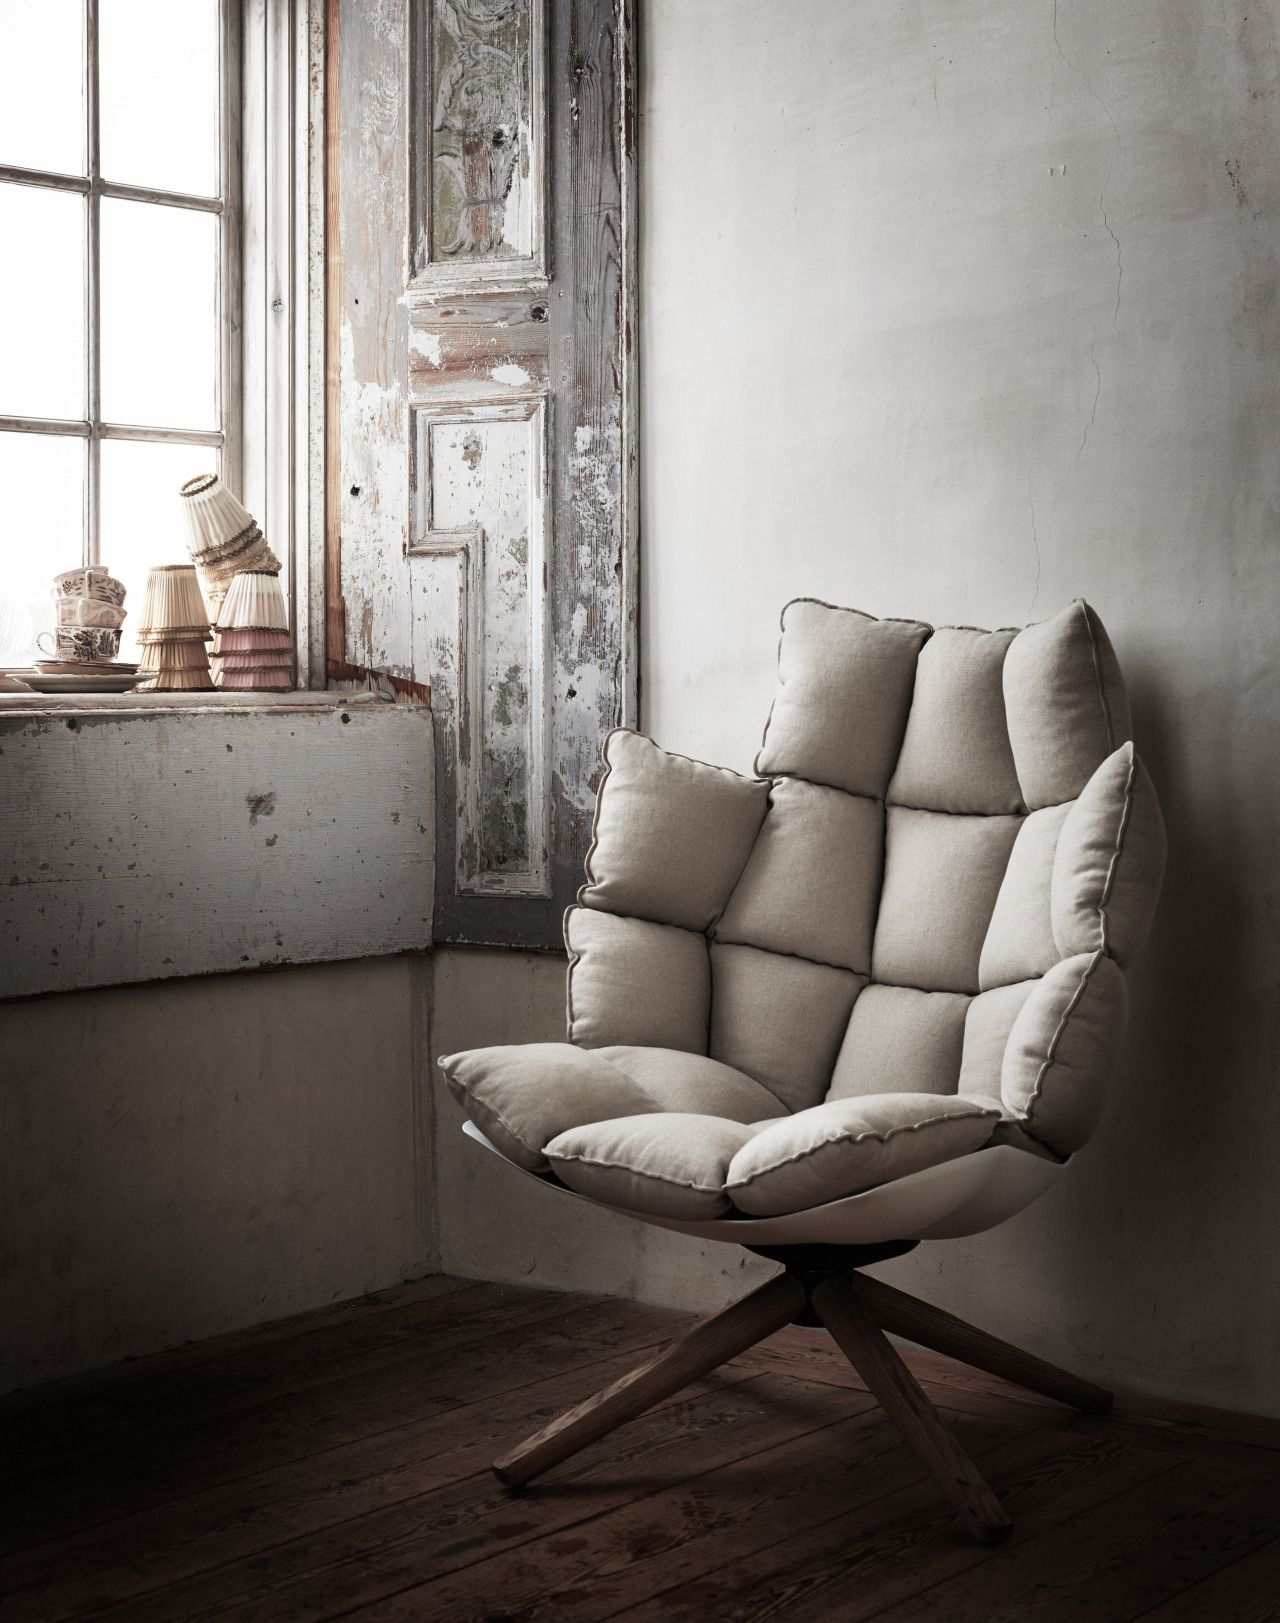 Husk Sessel The Husk Chair By Patricia Urquiola For B Andb Italia Is The